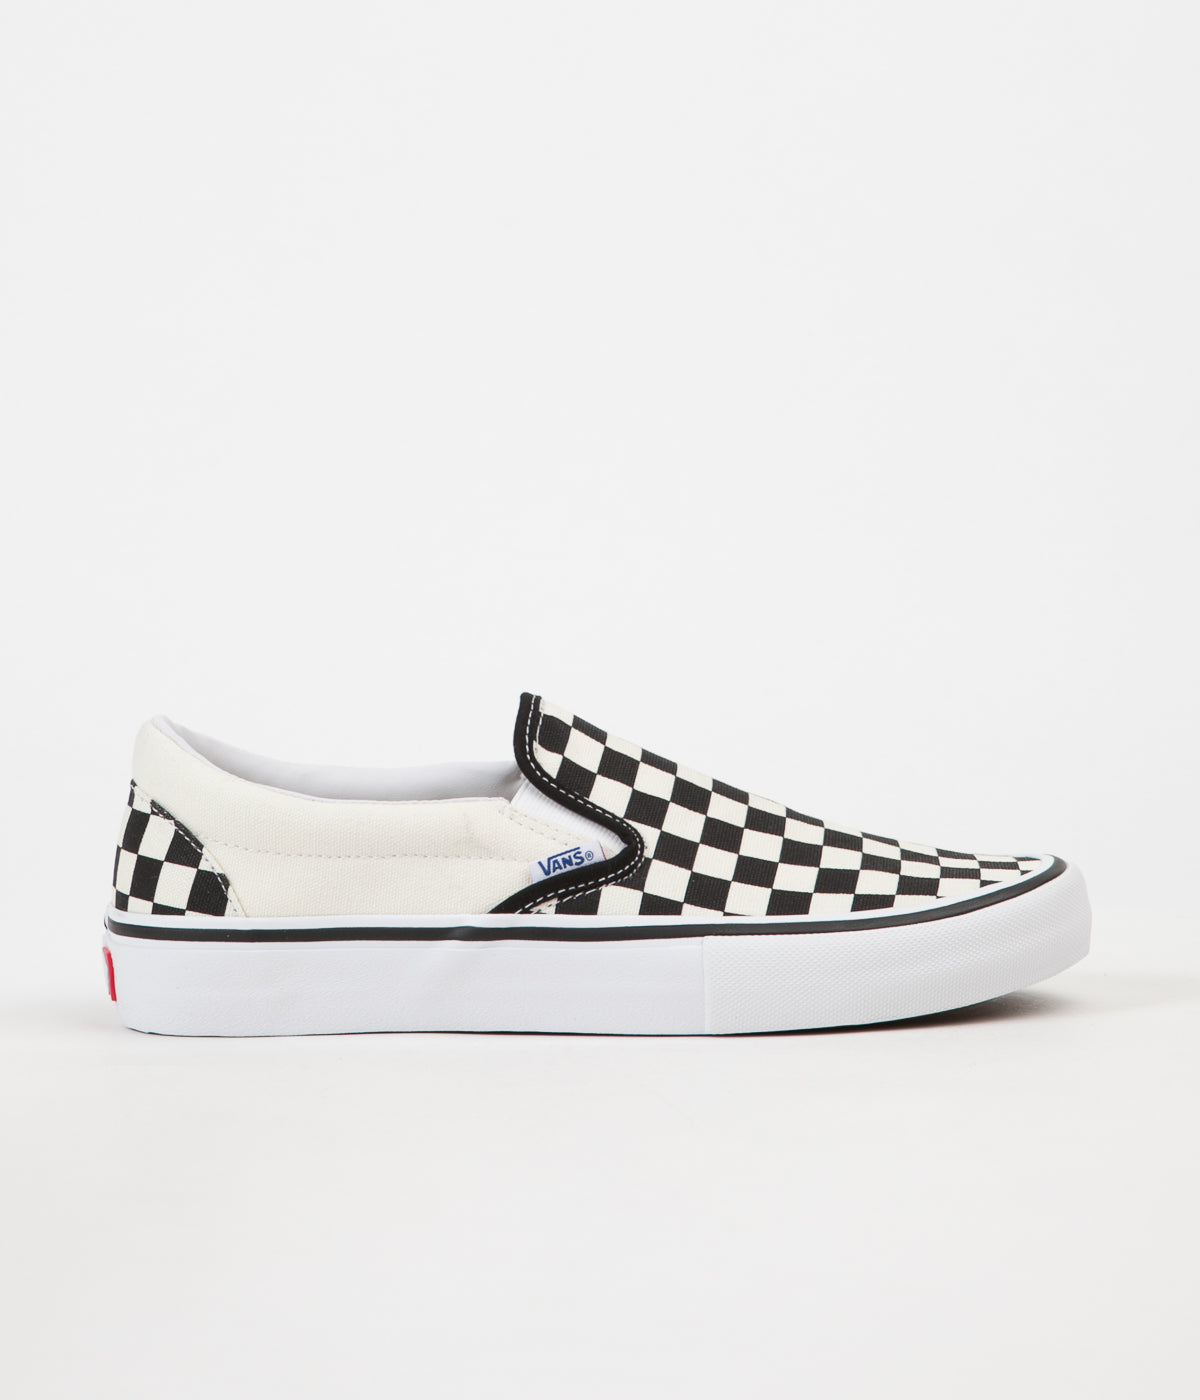 bdd1b2783a82 Vans Slip On Pro Checkerboard Shoes - Black   White